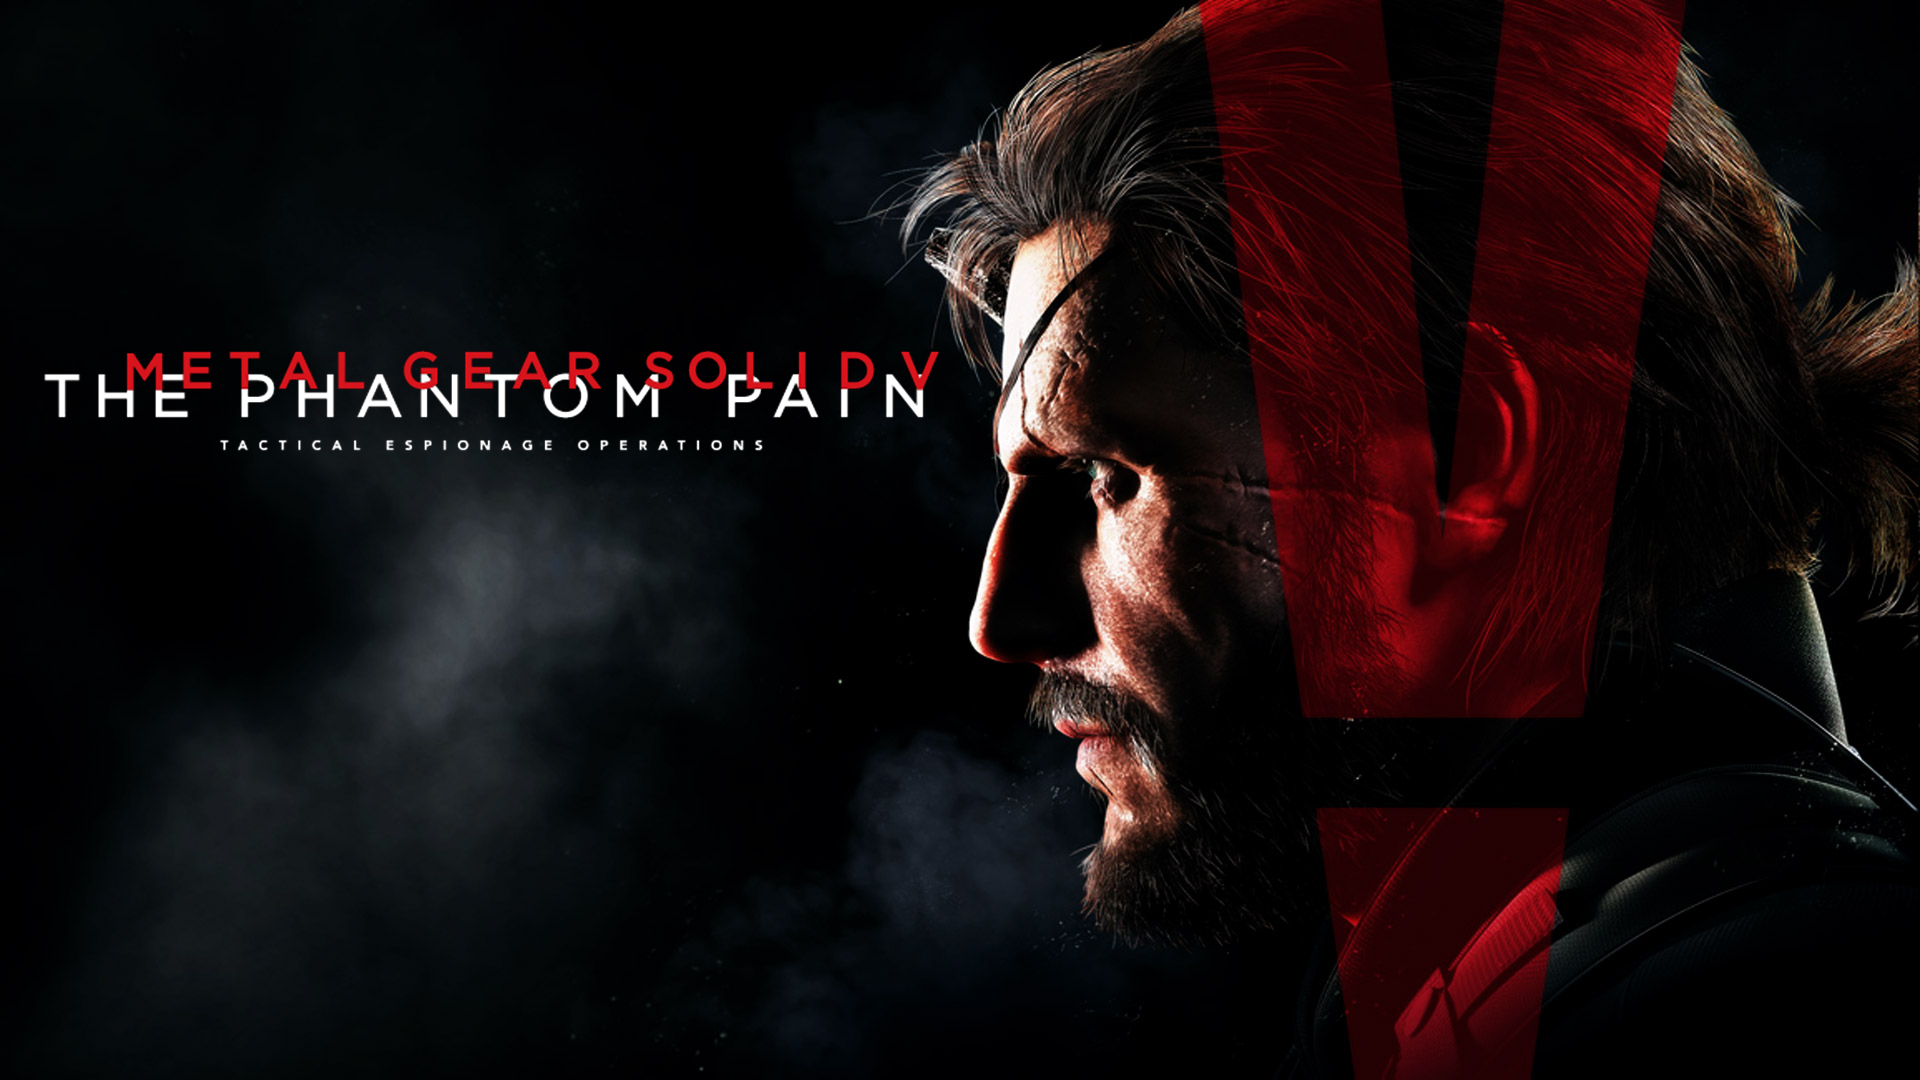 metal gear solid 5 the phantom pain wallpaper